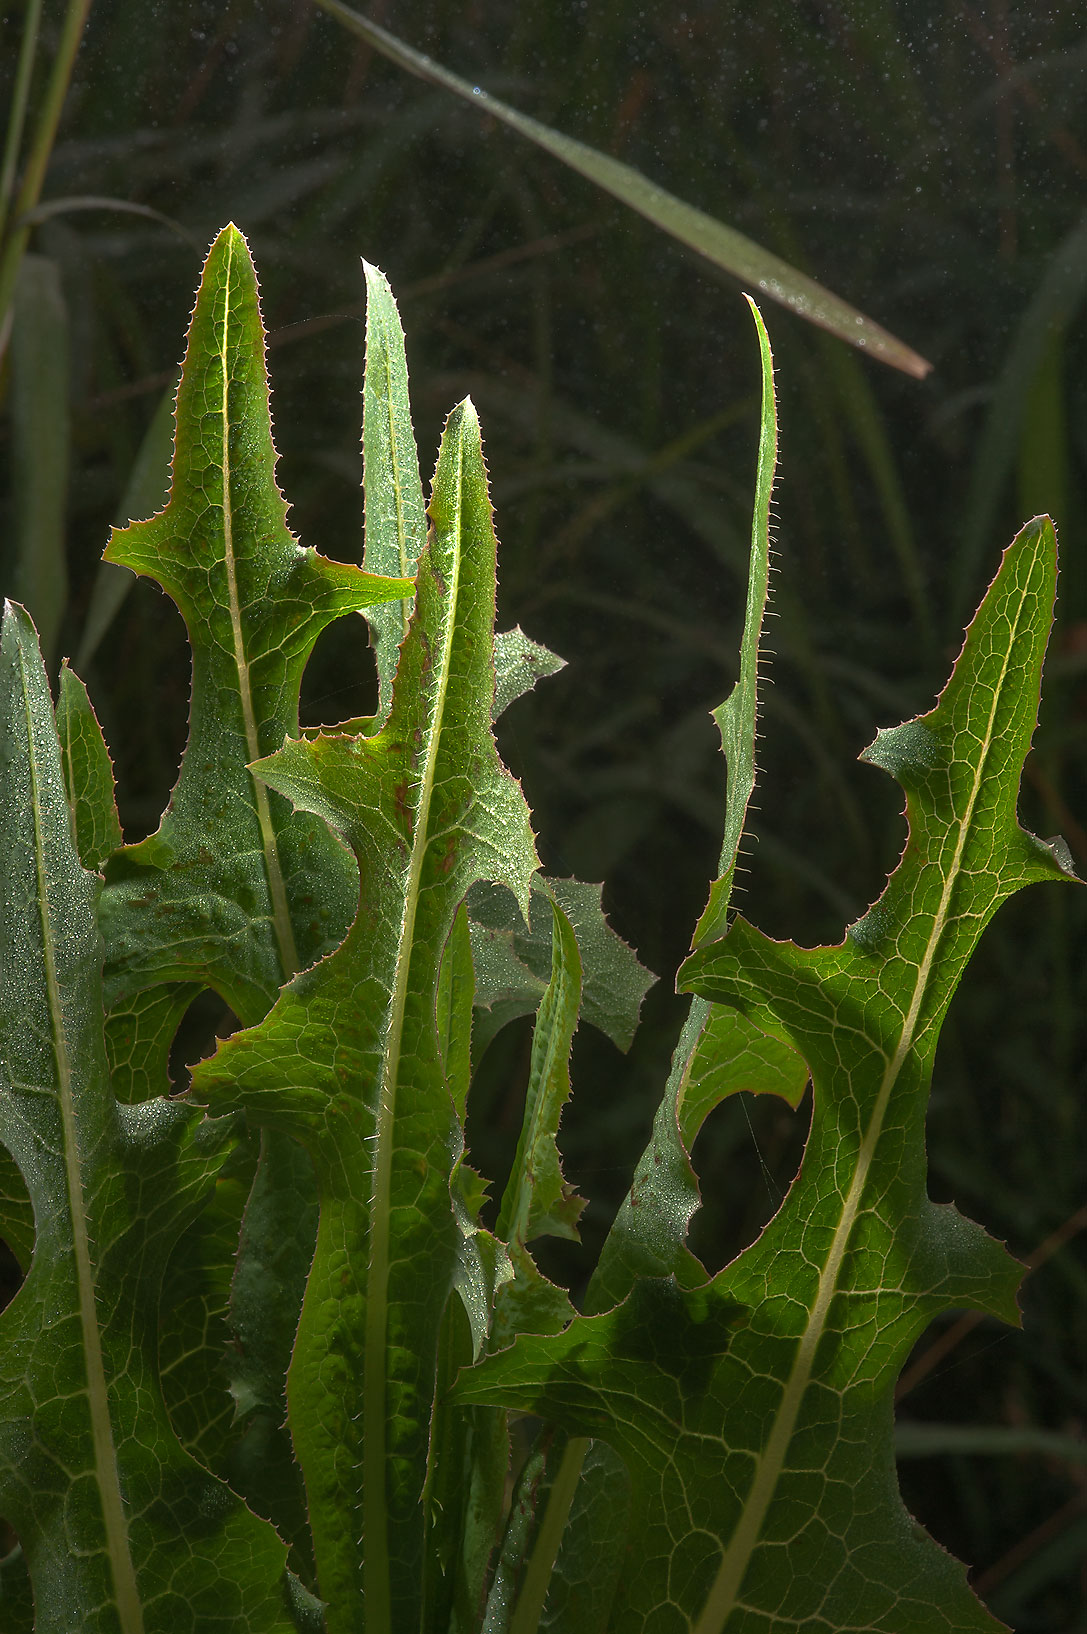 Leaves of smooth sow thistle (Sonchus oleraceus...irrigation) in Irkhaya Farms. Qatar